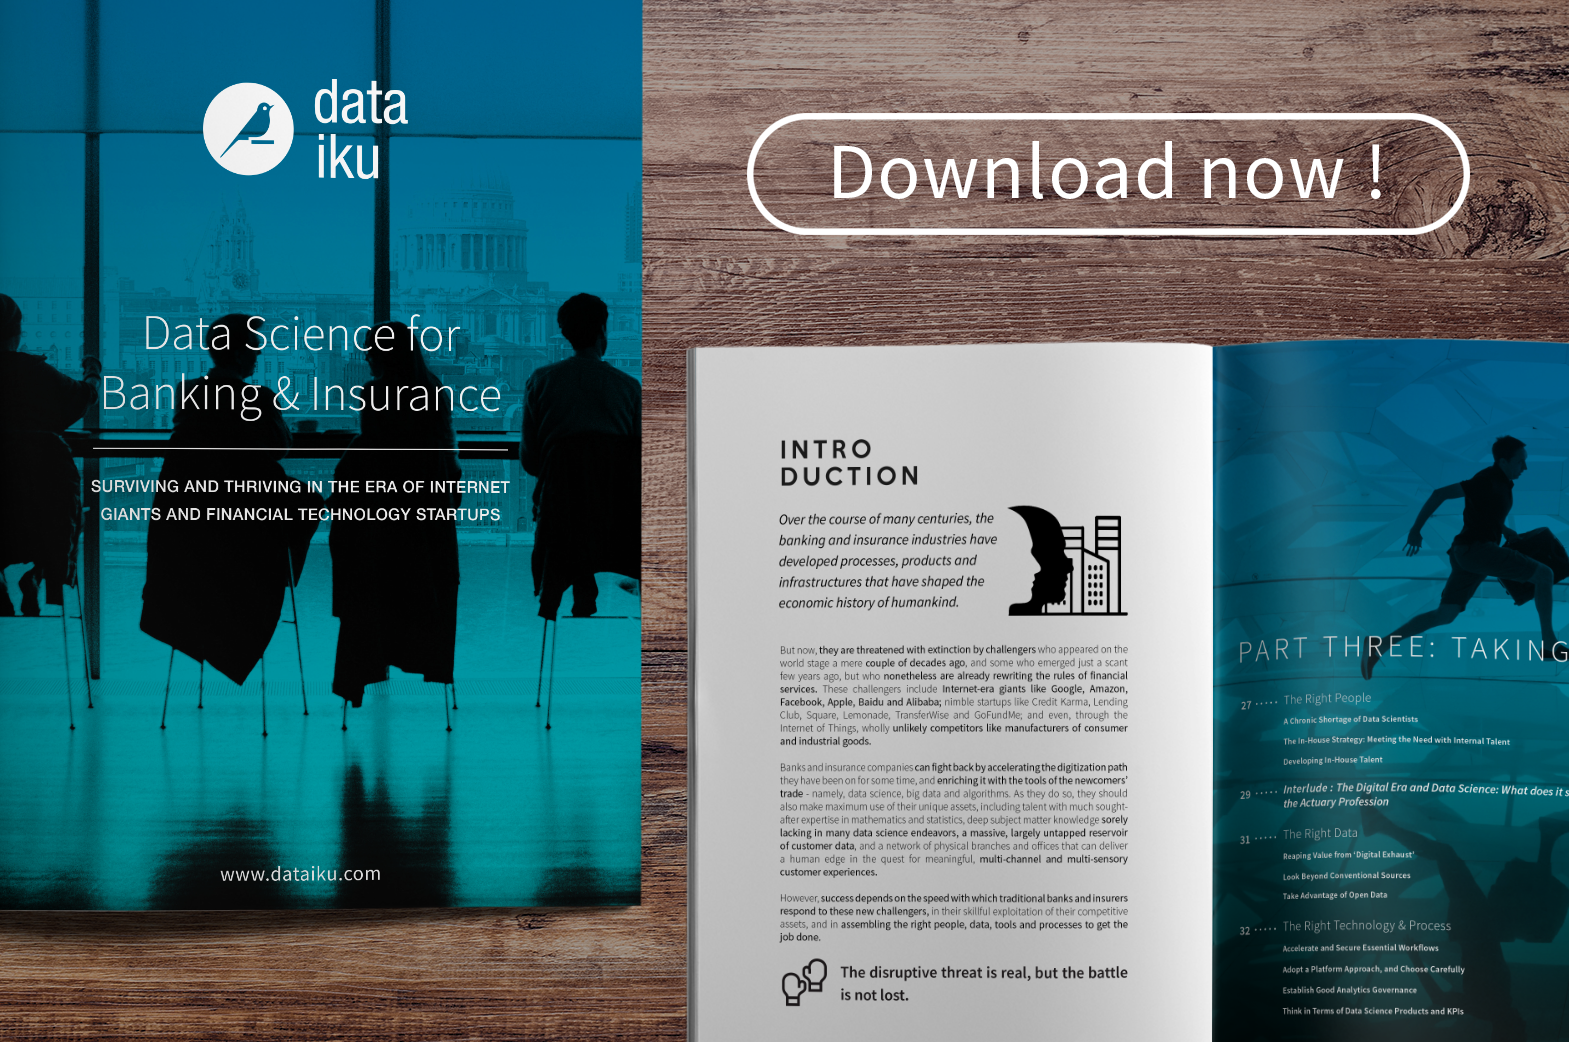 A New Ebook for Banking and Insurance Companies to Harness the Power of Big Data